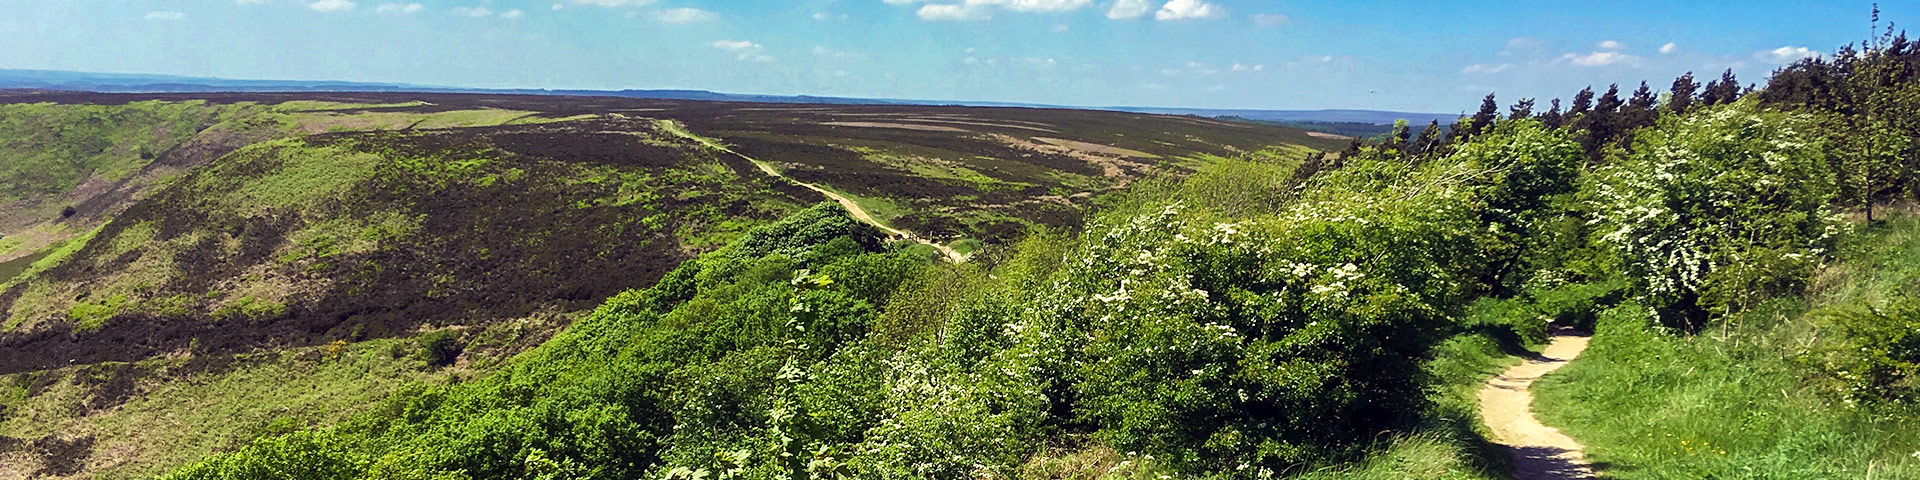 Panorama from the Hole of Horcum walk in North York Moors, England